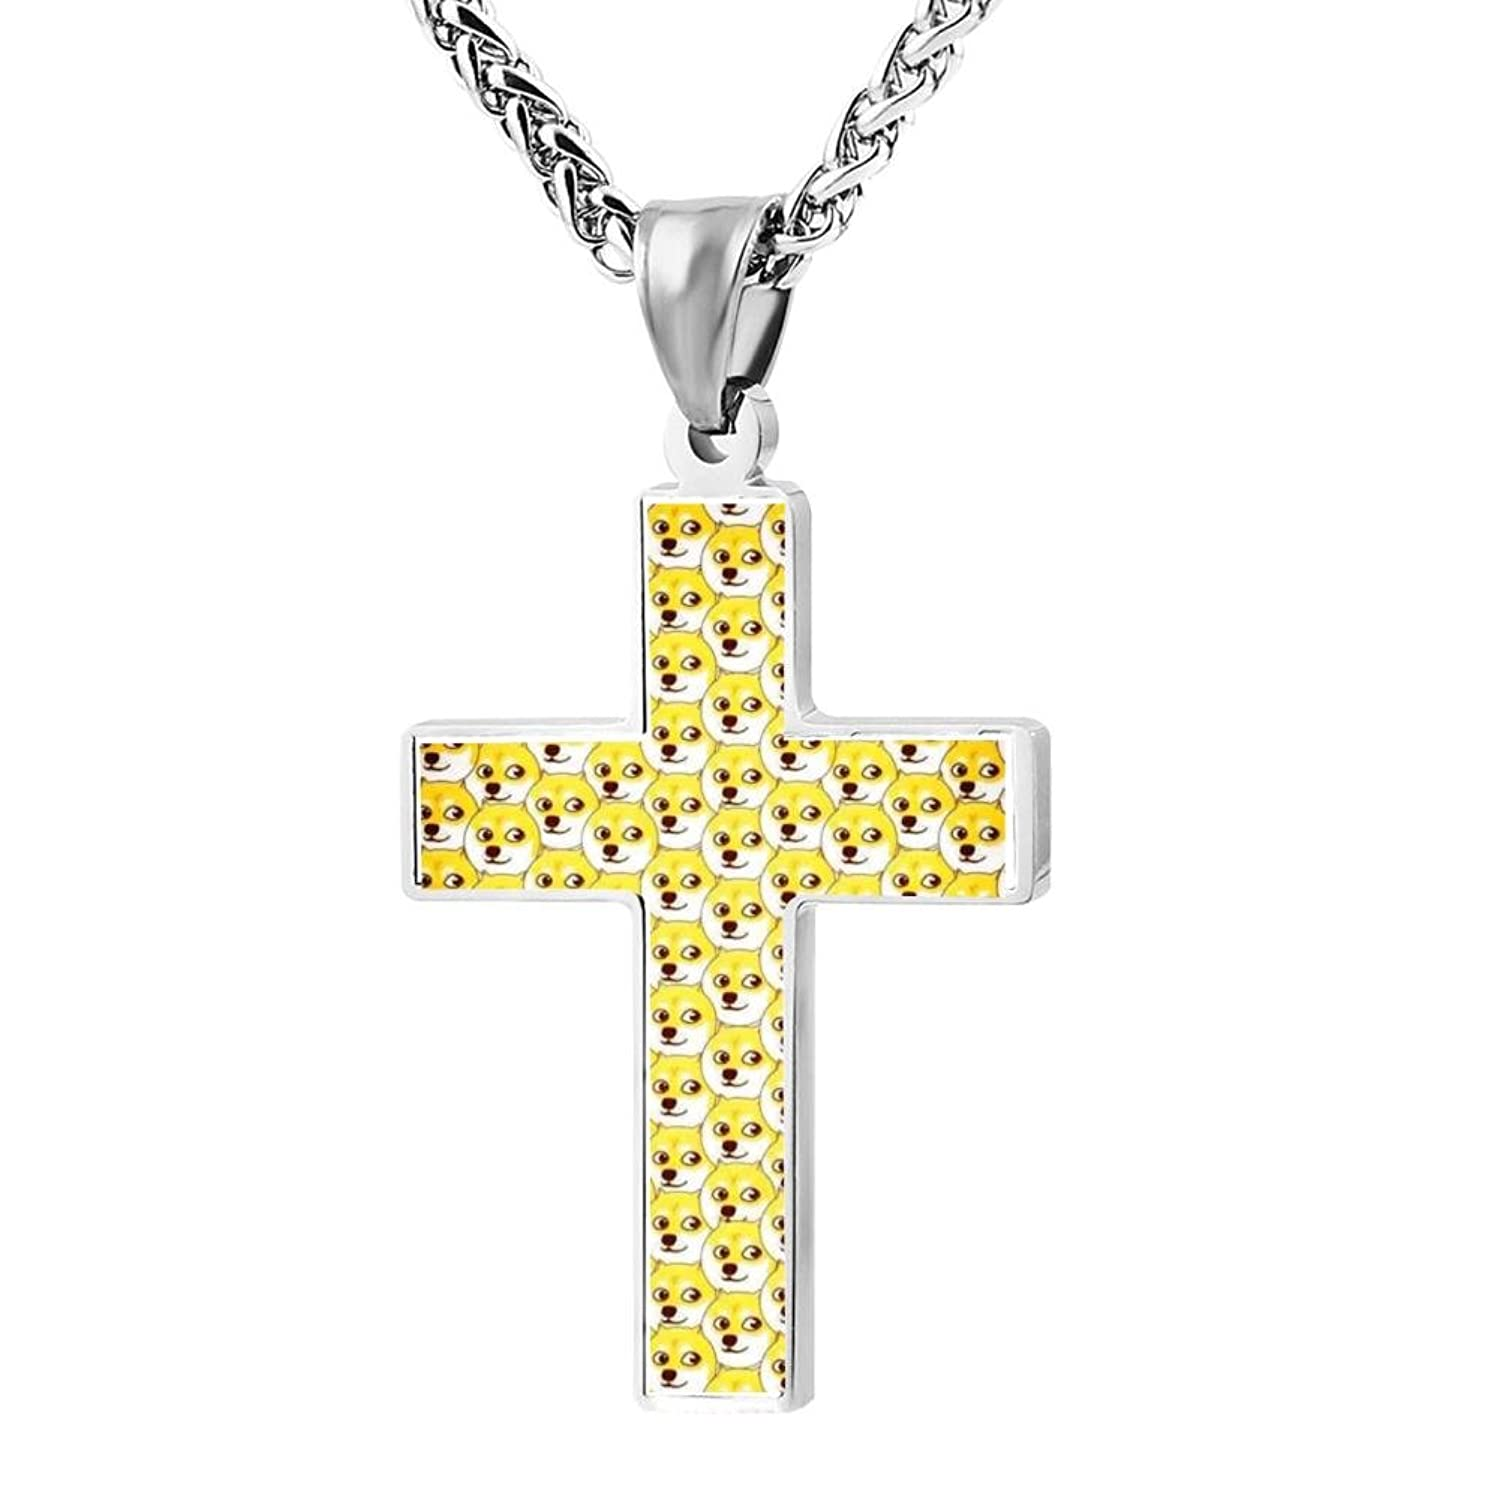 a4b1f766521c8 LUQeo Doge Christianity Crucifix Necklace Fashion Religious Jewelry ...